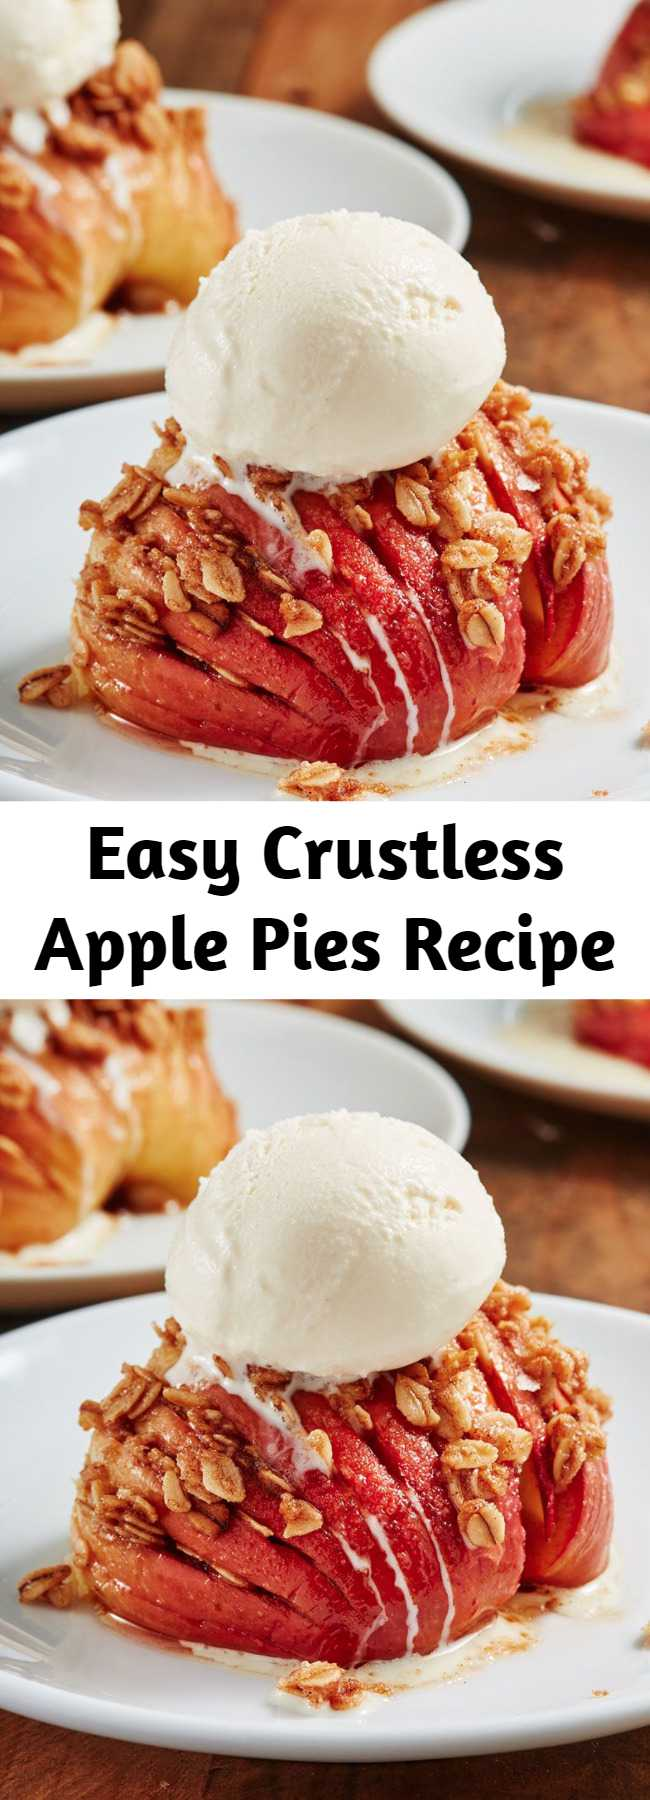 Easy Crustless Apple Pies Recipe - Hasselback apples are the easy fall dessert idea you need to try ASAP. It's a low-carb recipe that doesn't taste like it. The best part: You don't need to deal with rolling out and chilling pie dough. #easyrecipes #easydessert #healthydessert #lowcarbdessert #applerecipes #dessert #applepie #healthyapple